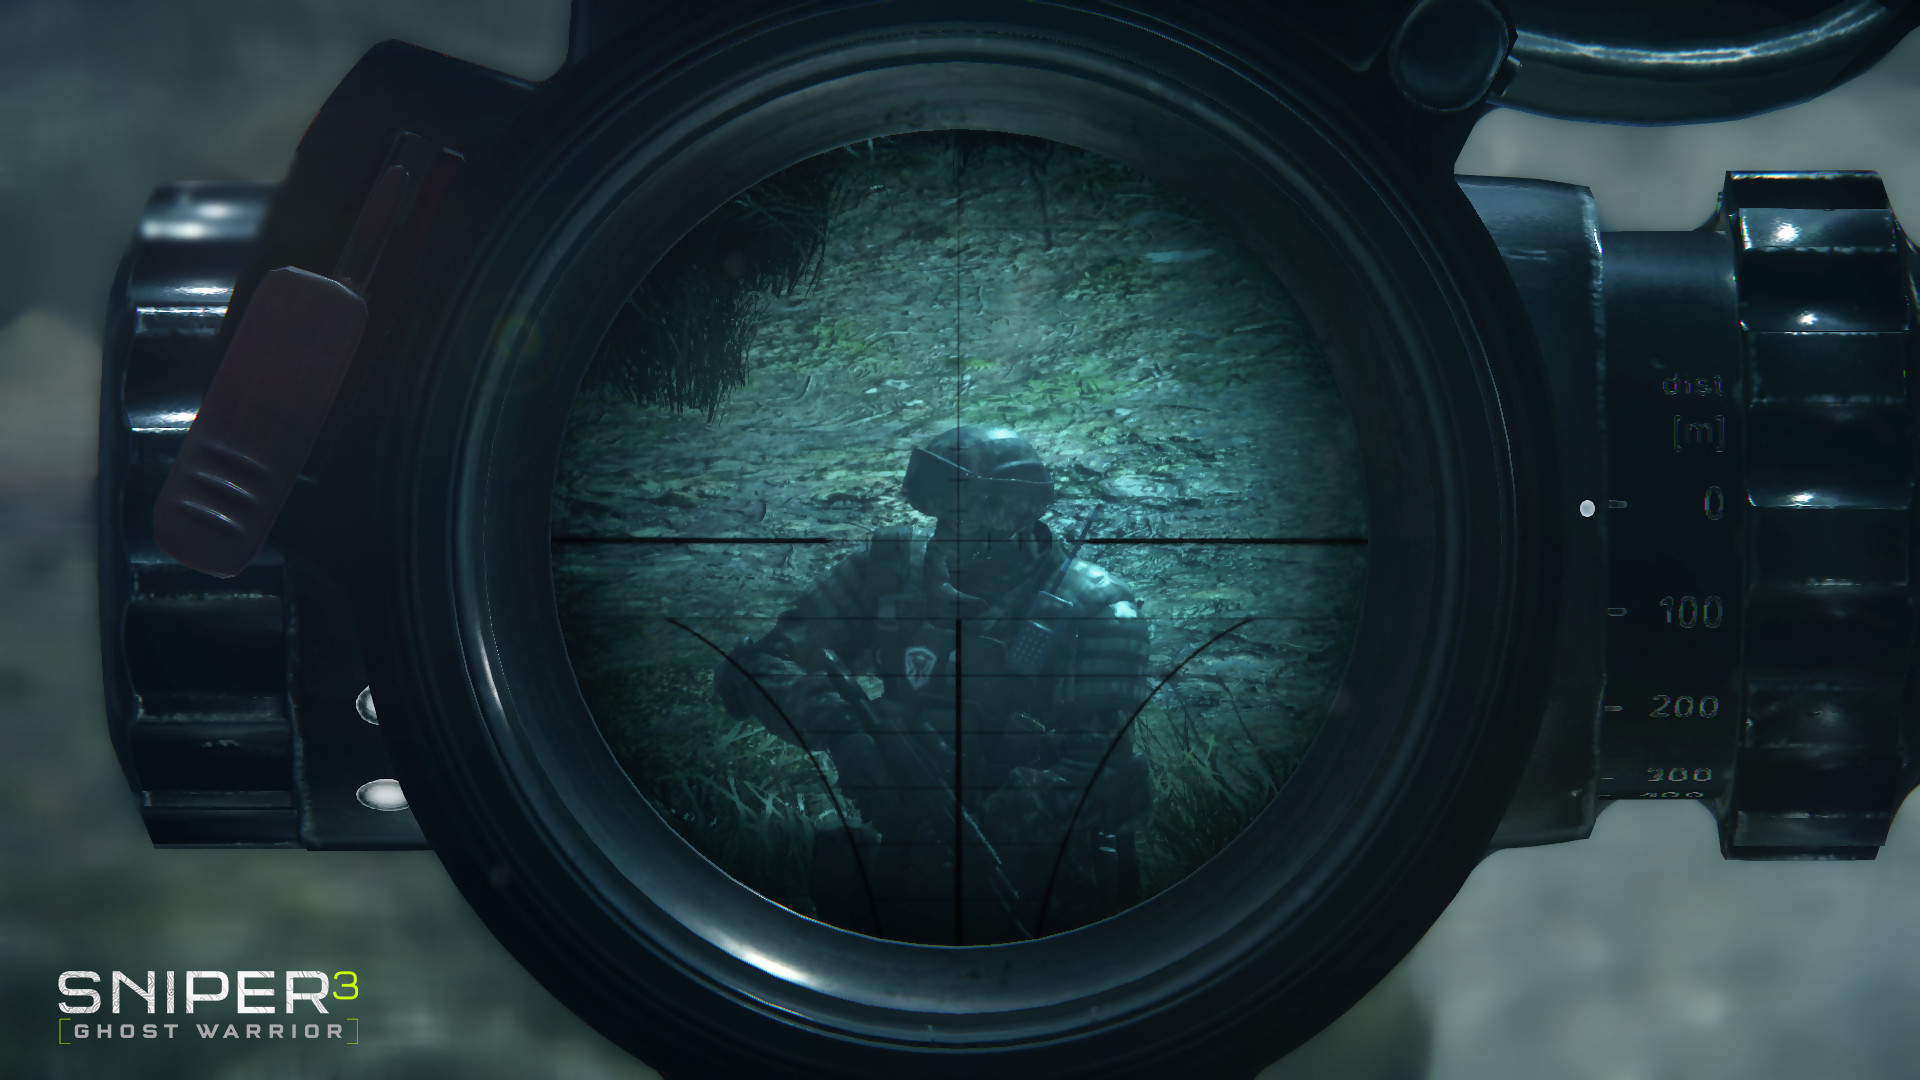 arma 3 sniper screenshots with Images Sniper Ghost Warrior 3 20969 5 on Sniper Elite 3 Review as well Arma 3 Wallpaper Hd furthermore Call Of Duty Infinite Warfare Ganha Novas Imagens 42615 furthermore Dayz Standalone Wallpapers besides 43704 Fn P90 Mkii.